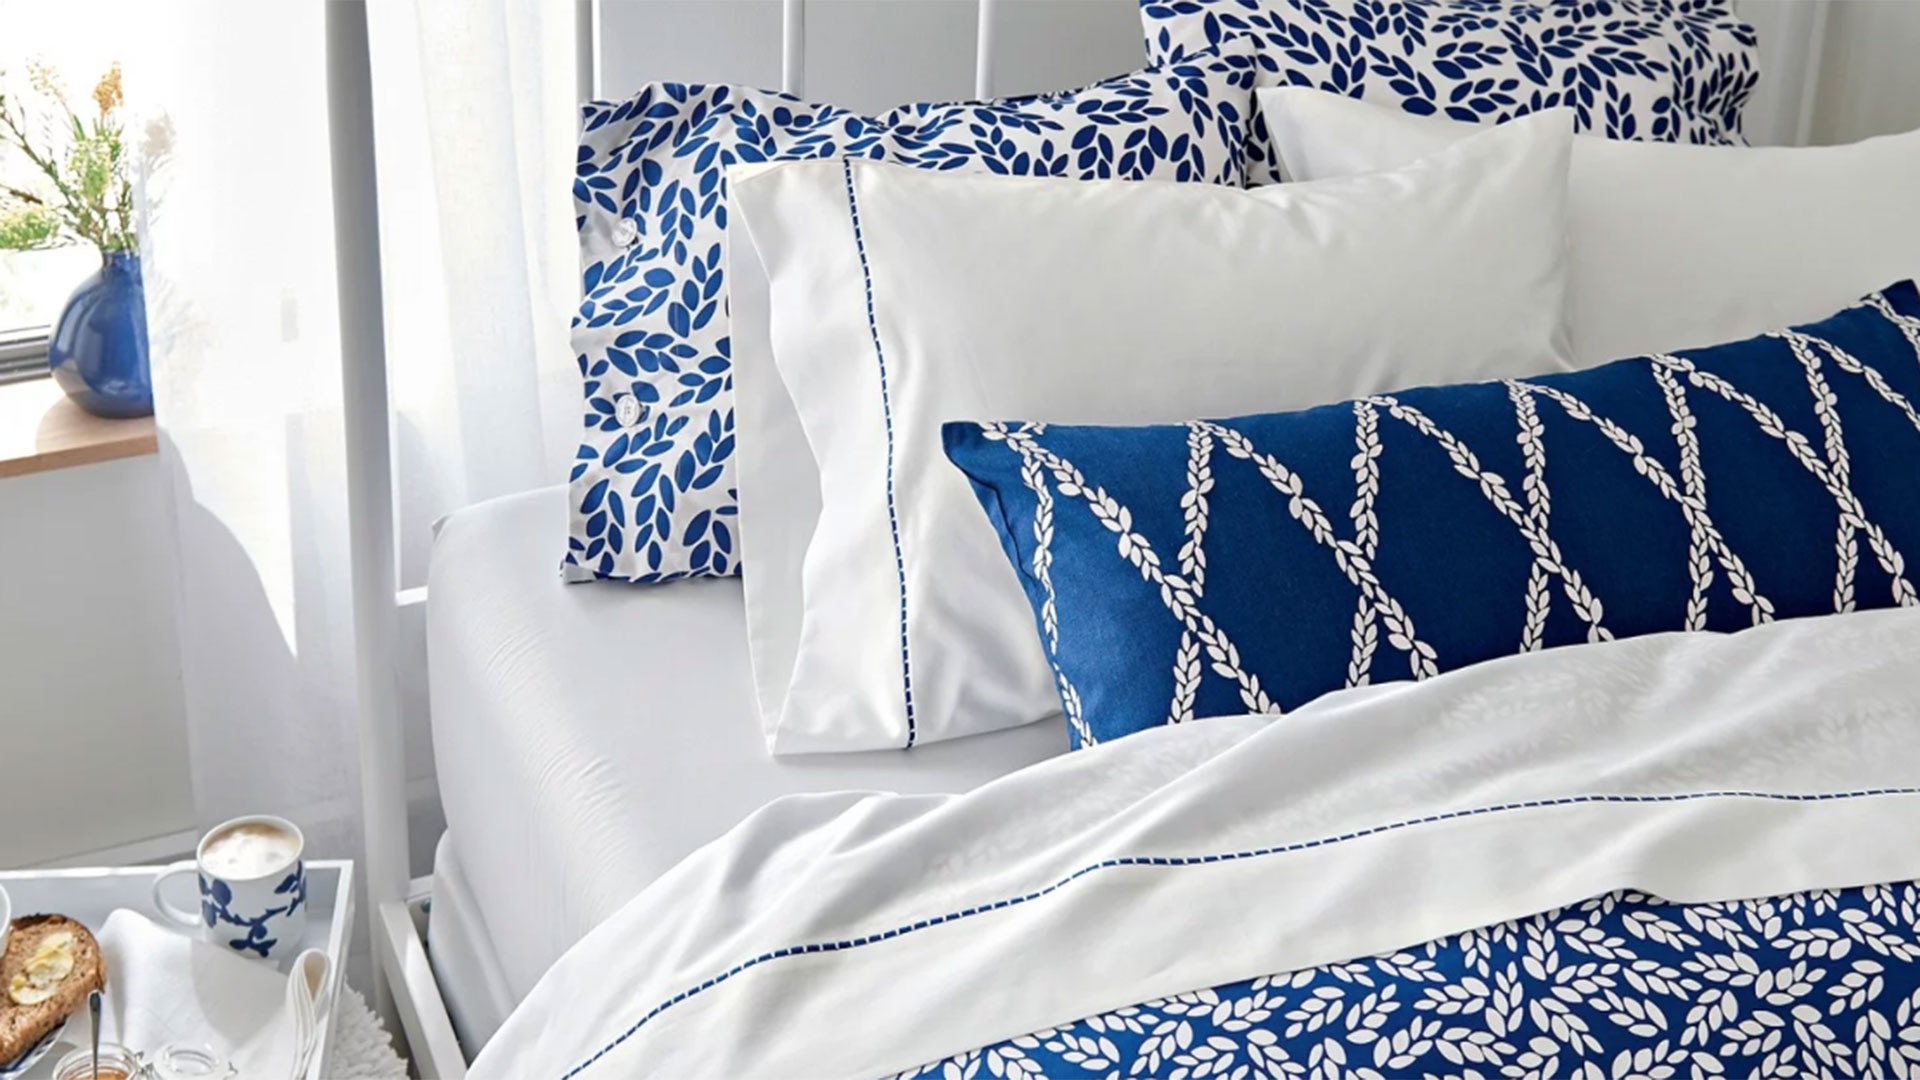 Reese Witherspoon S New Draper James Bedding Collection Is